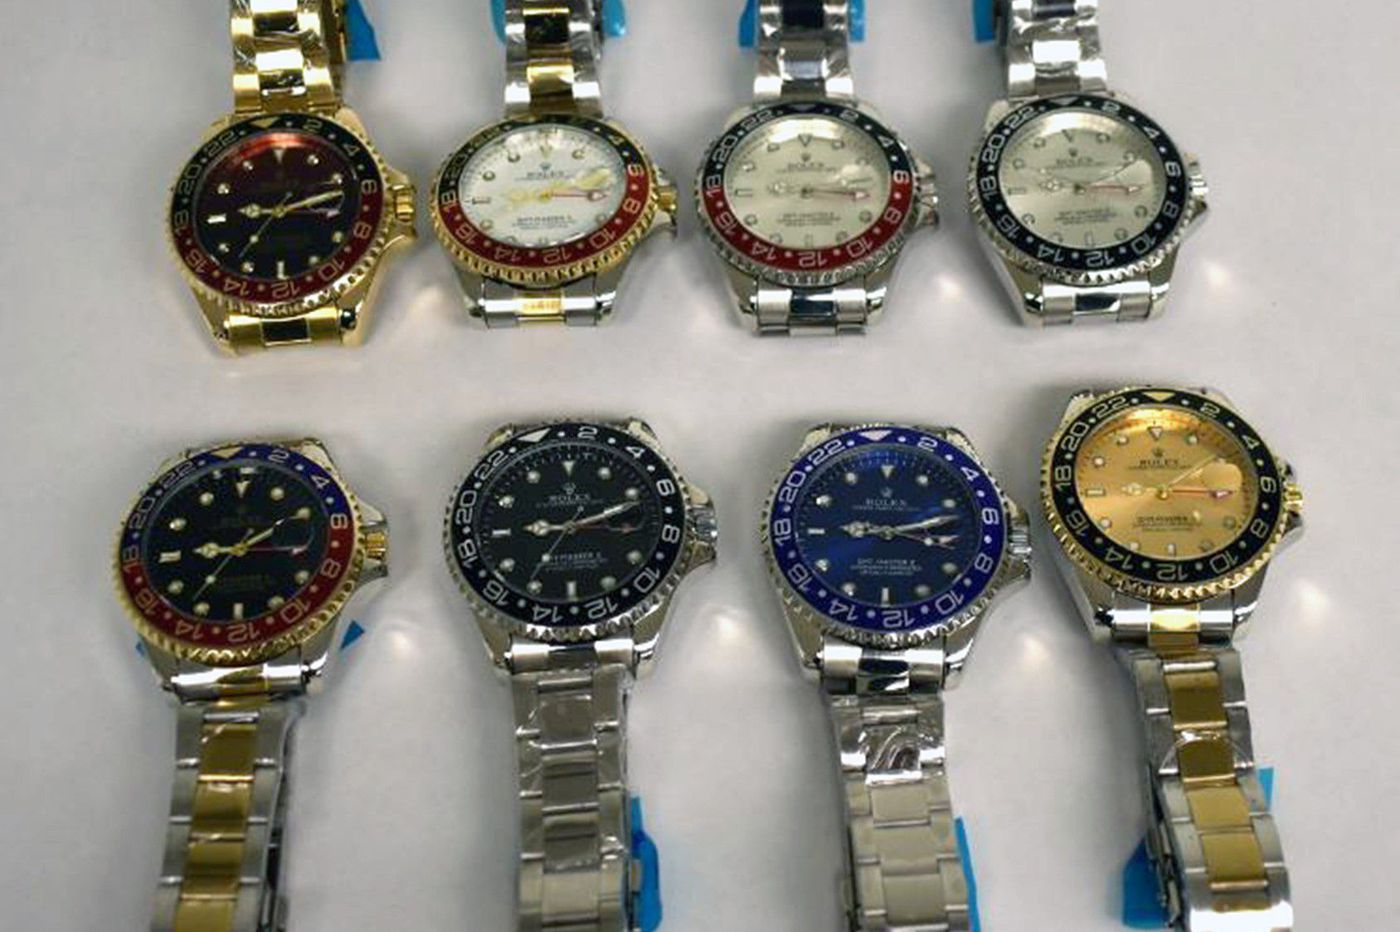 Fake Rolex Watches Destined for Delaware County Seized by U.S. Customs